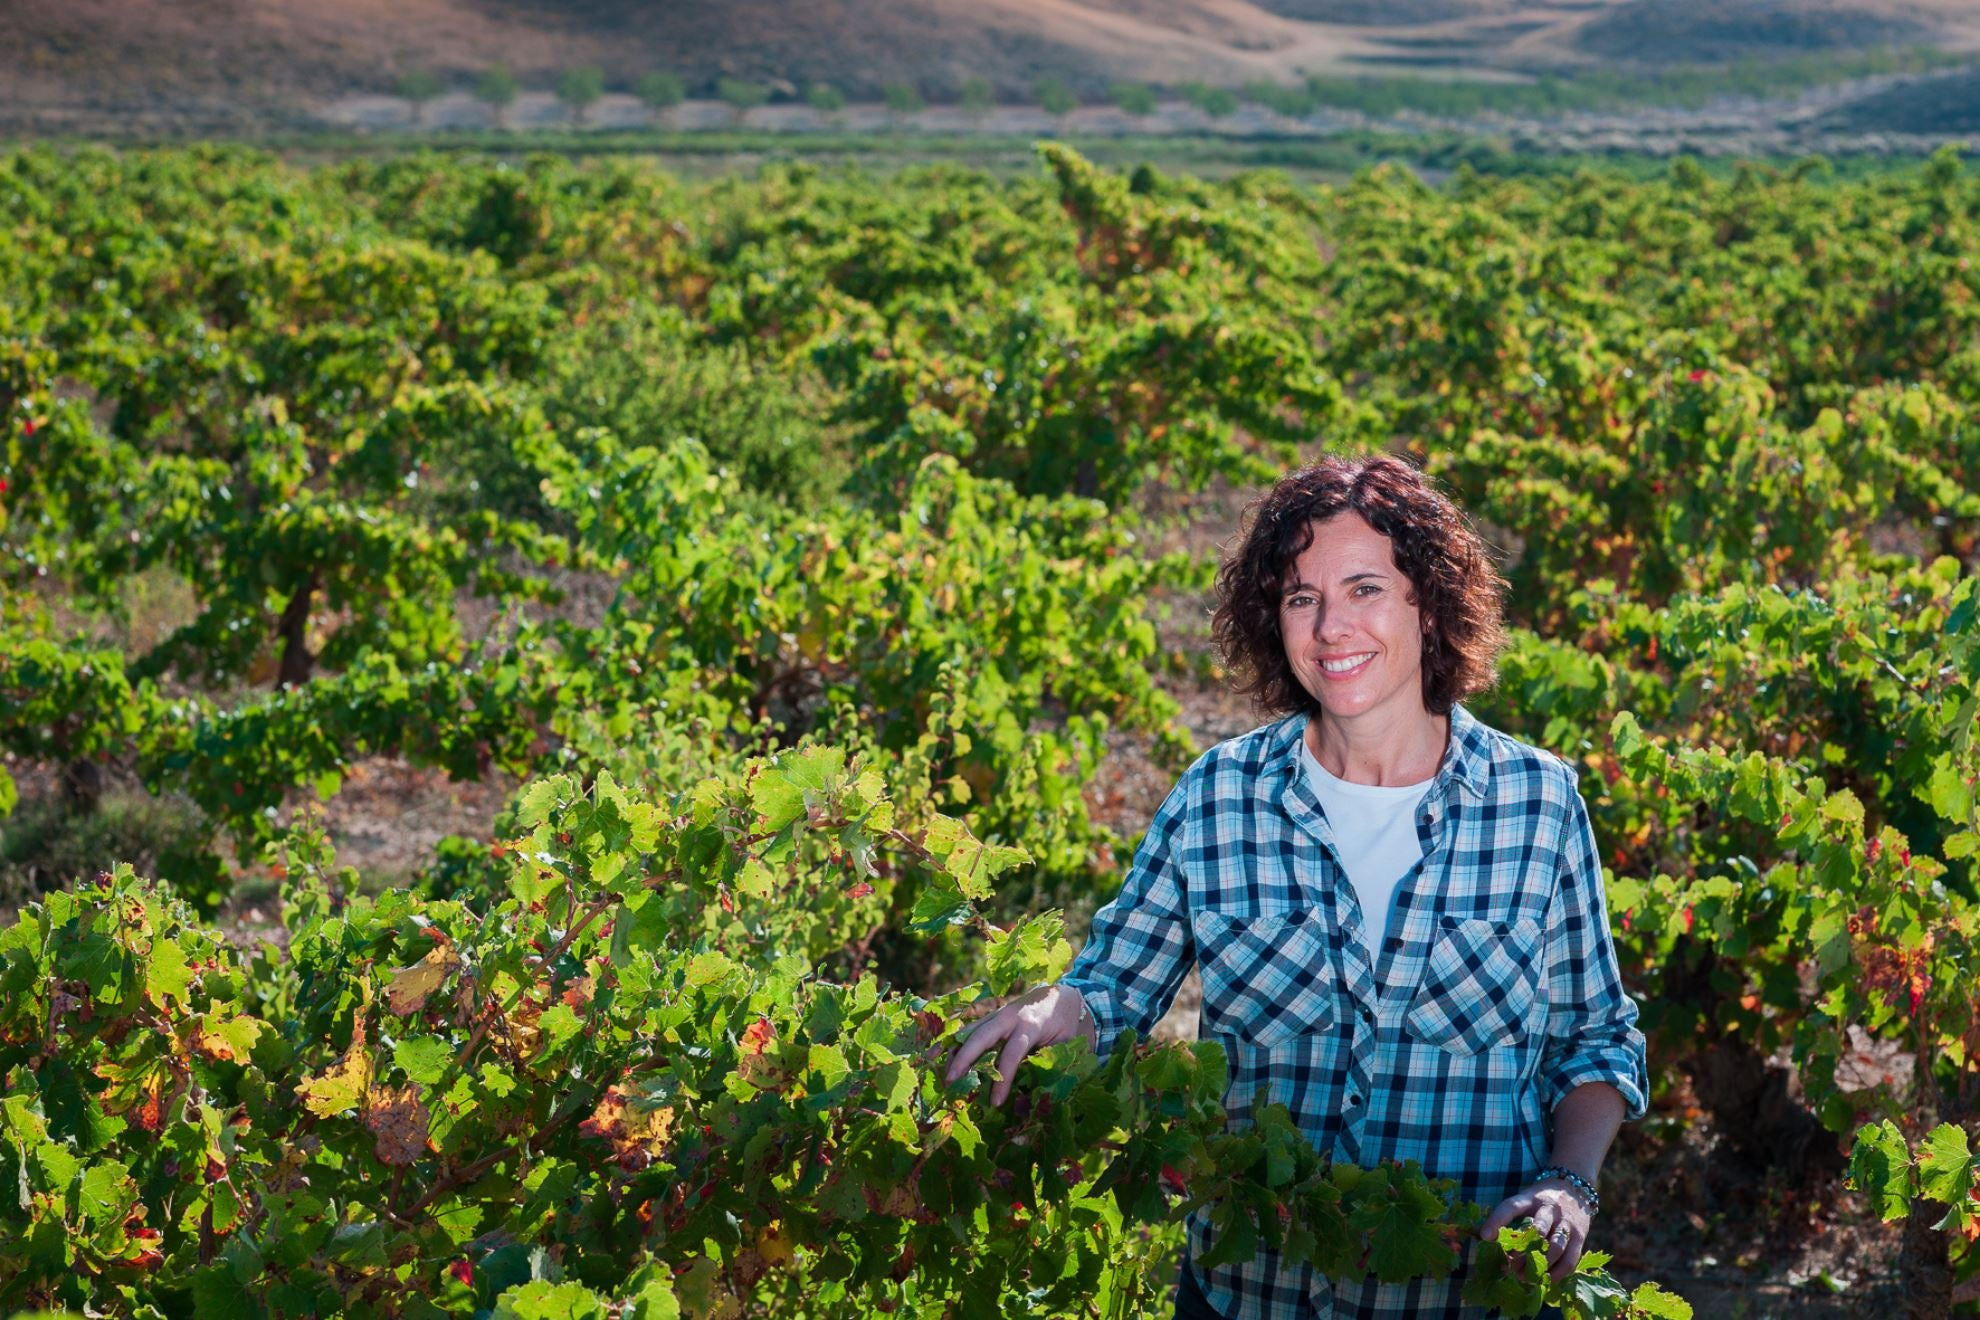 BODEGAS TEMPORE: THE CELEBRATORY UNION OF A WOMAN AND HER WINEMAKING LEGACY